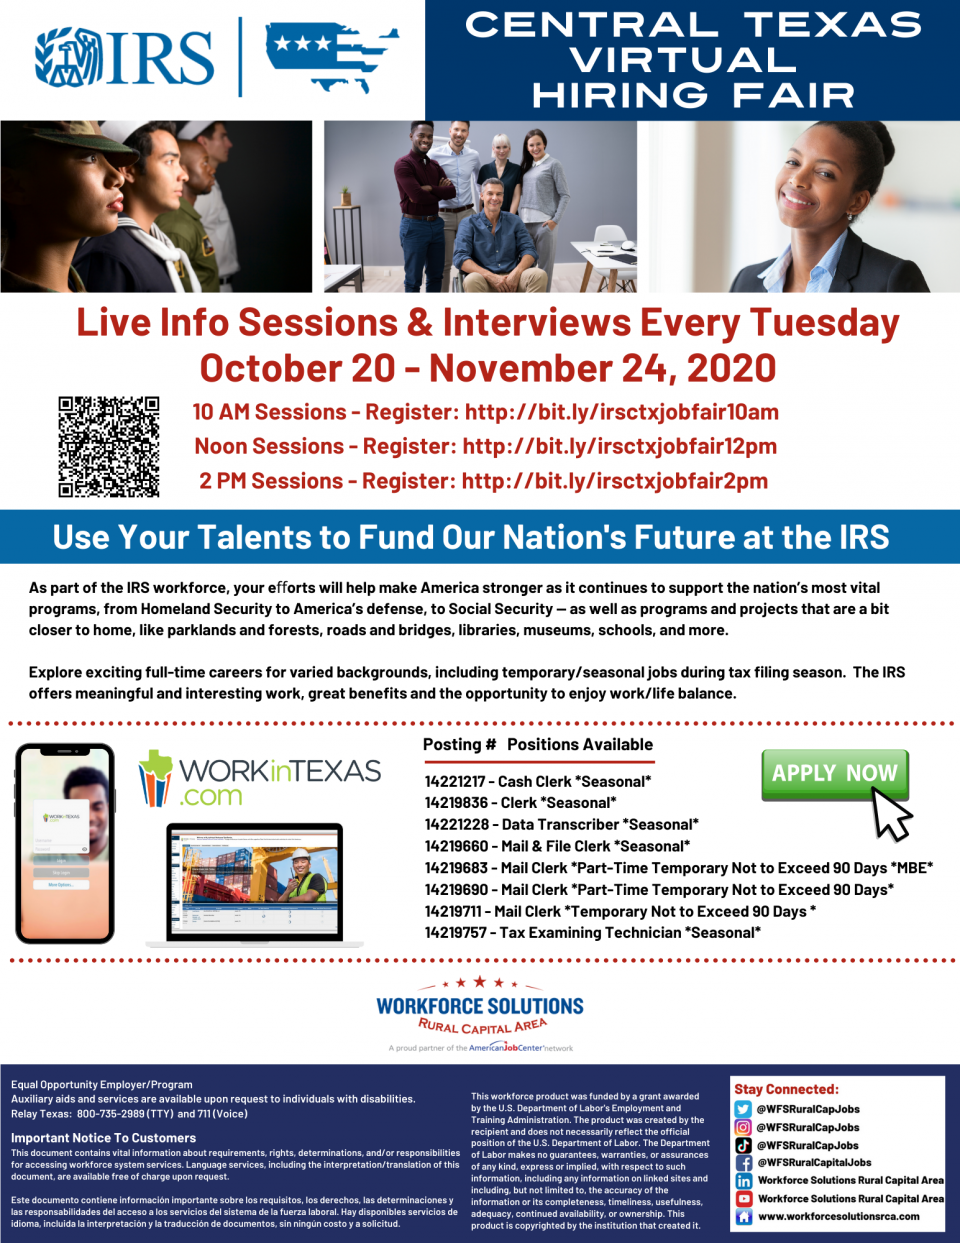 The IRS is Hiring in Central Texas! Virtual Career Fairs Offered Every Tuesday Through November